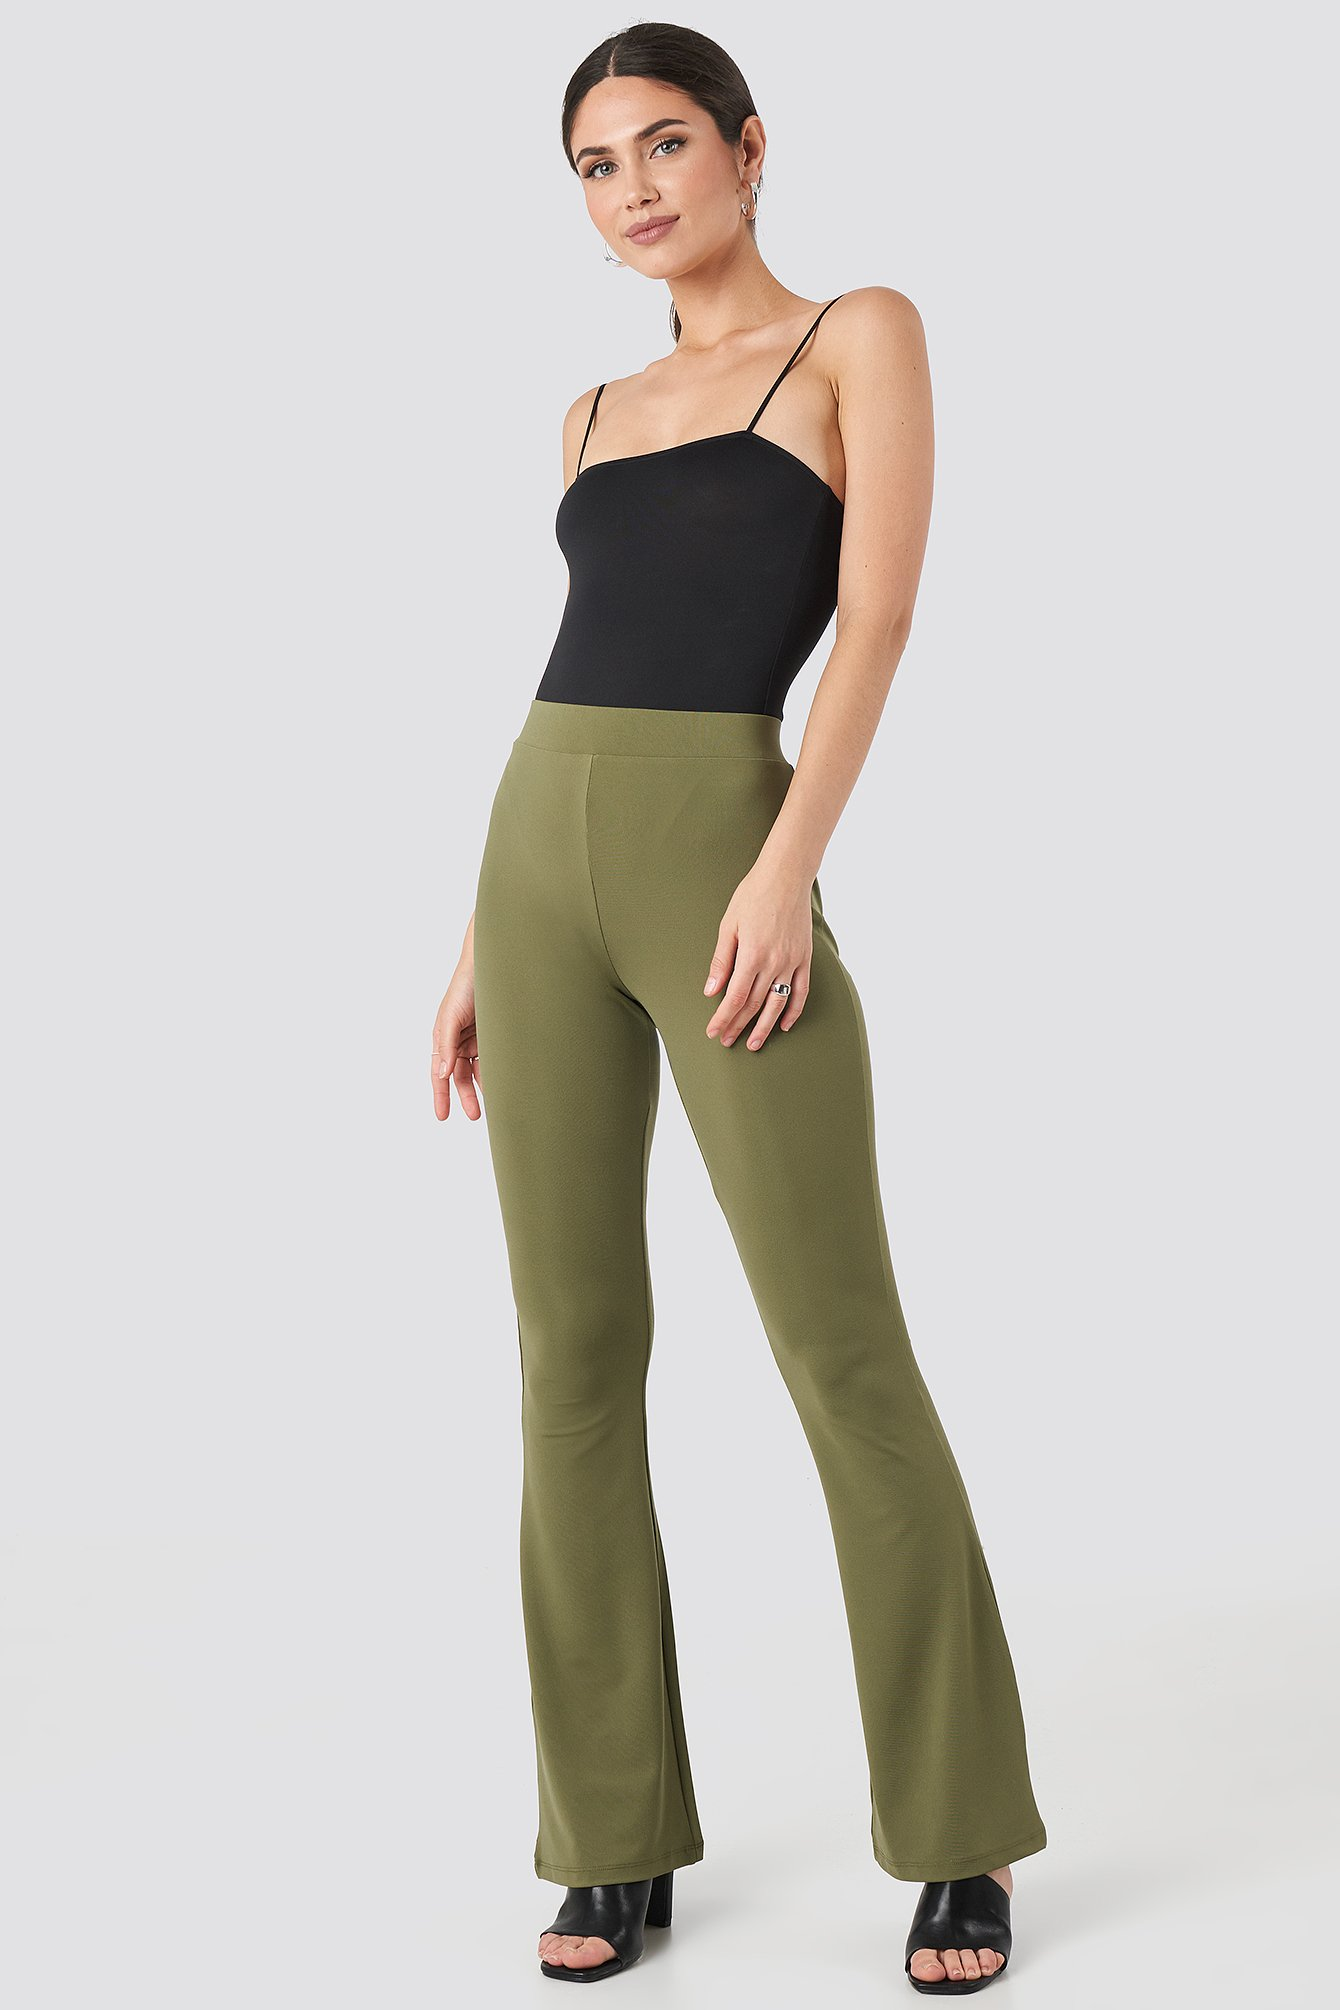 NA-KD Trend Flared Leggings - Green